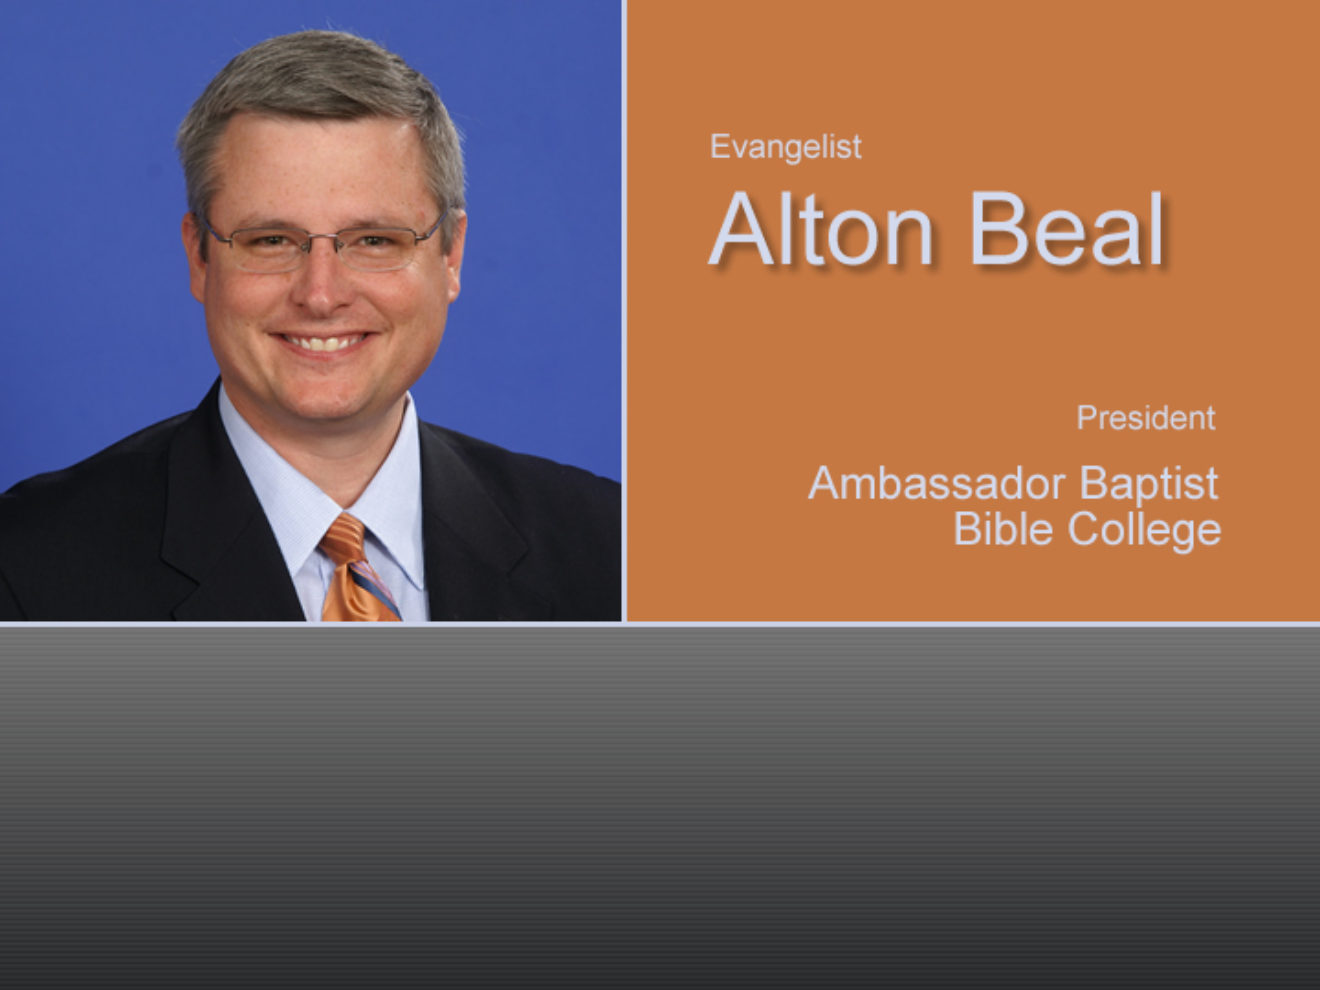 Fall Revival with Alton Beal